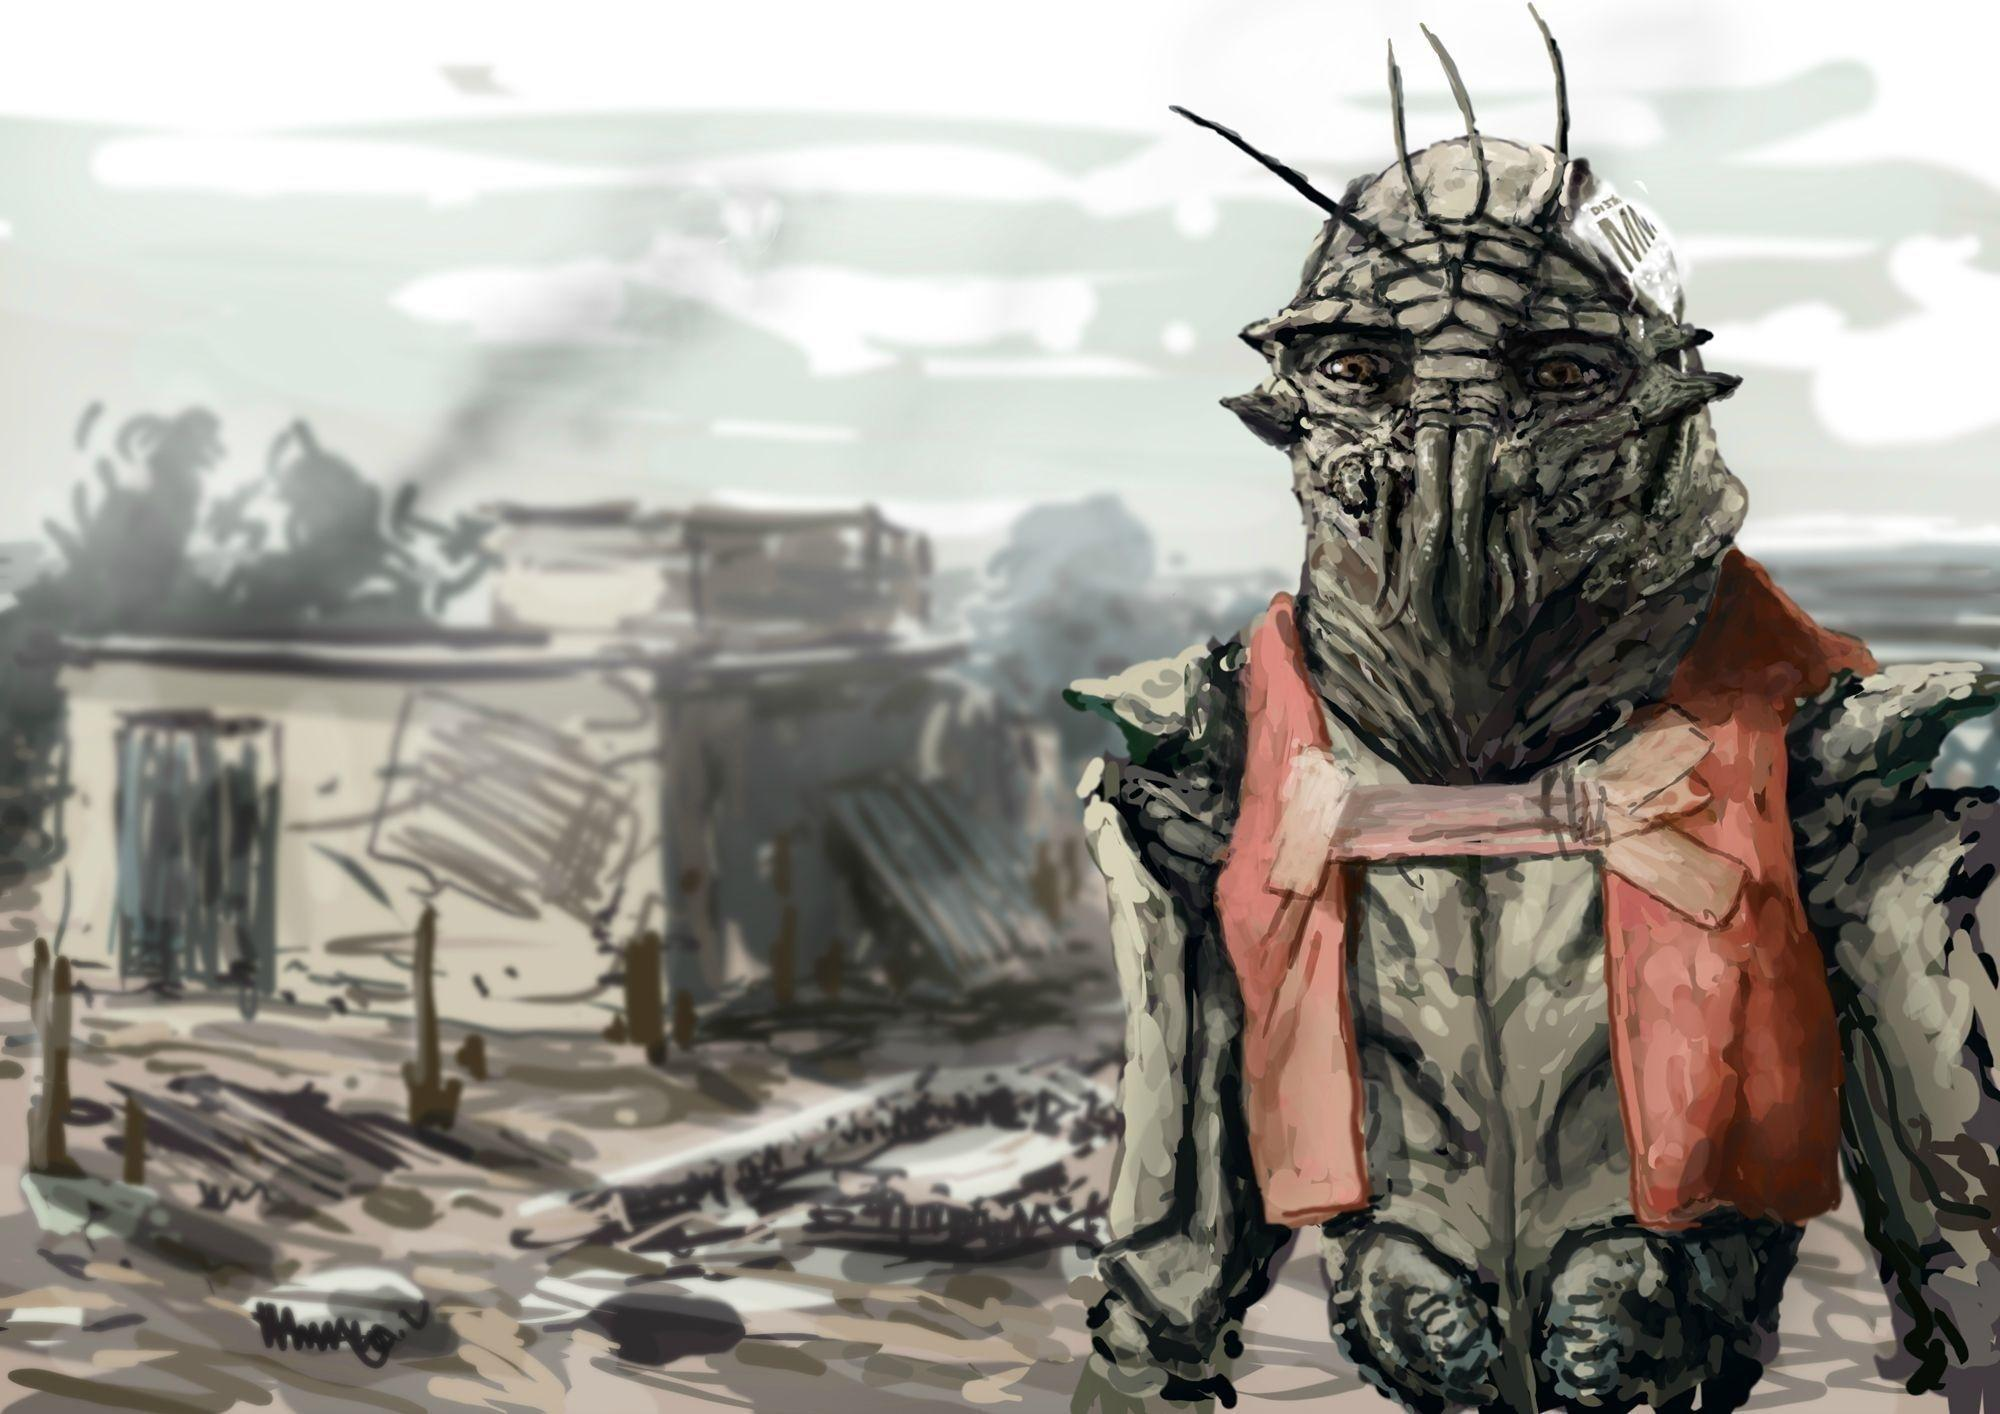 district 9 computer wallpapers - photo #26